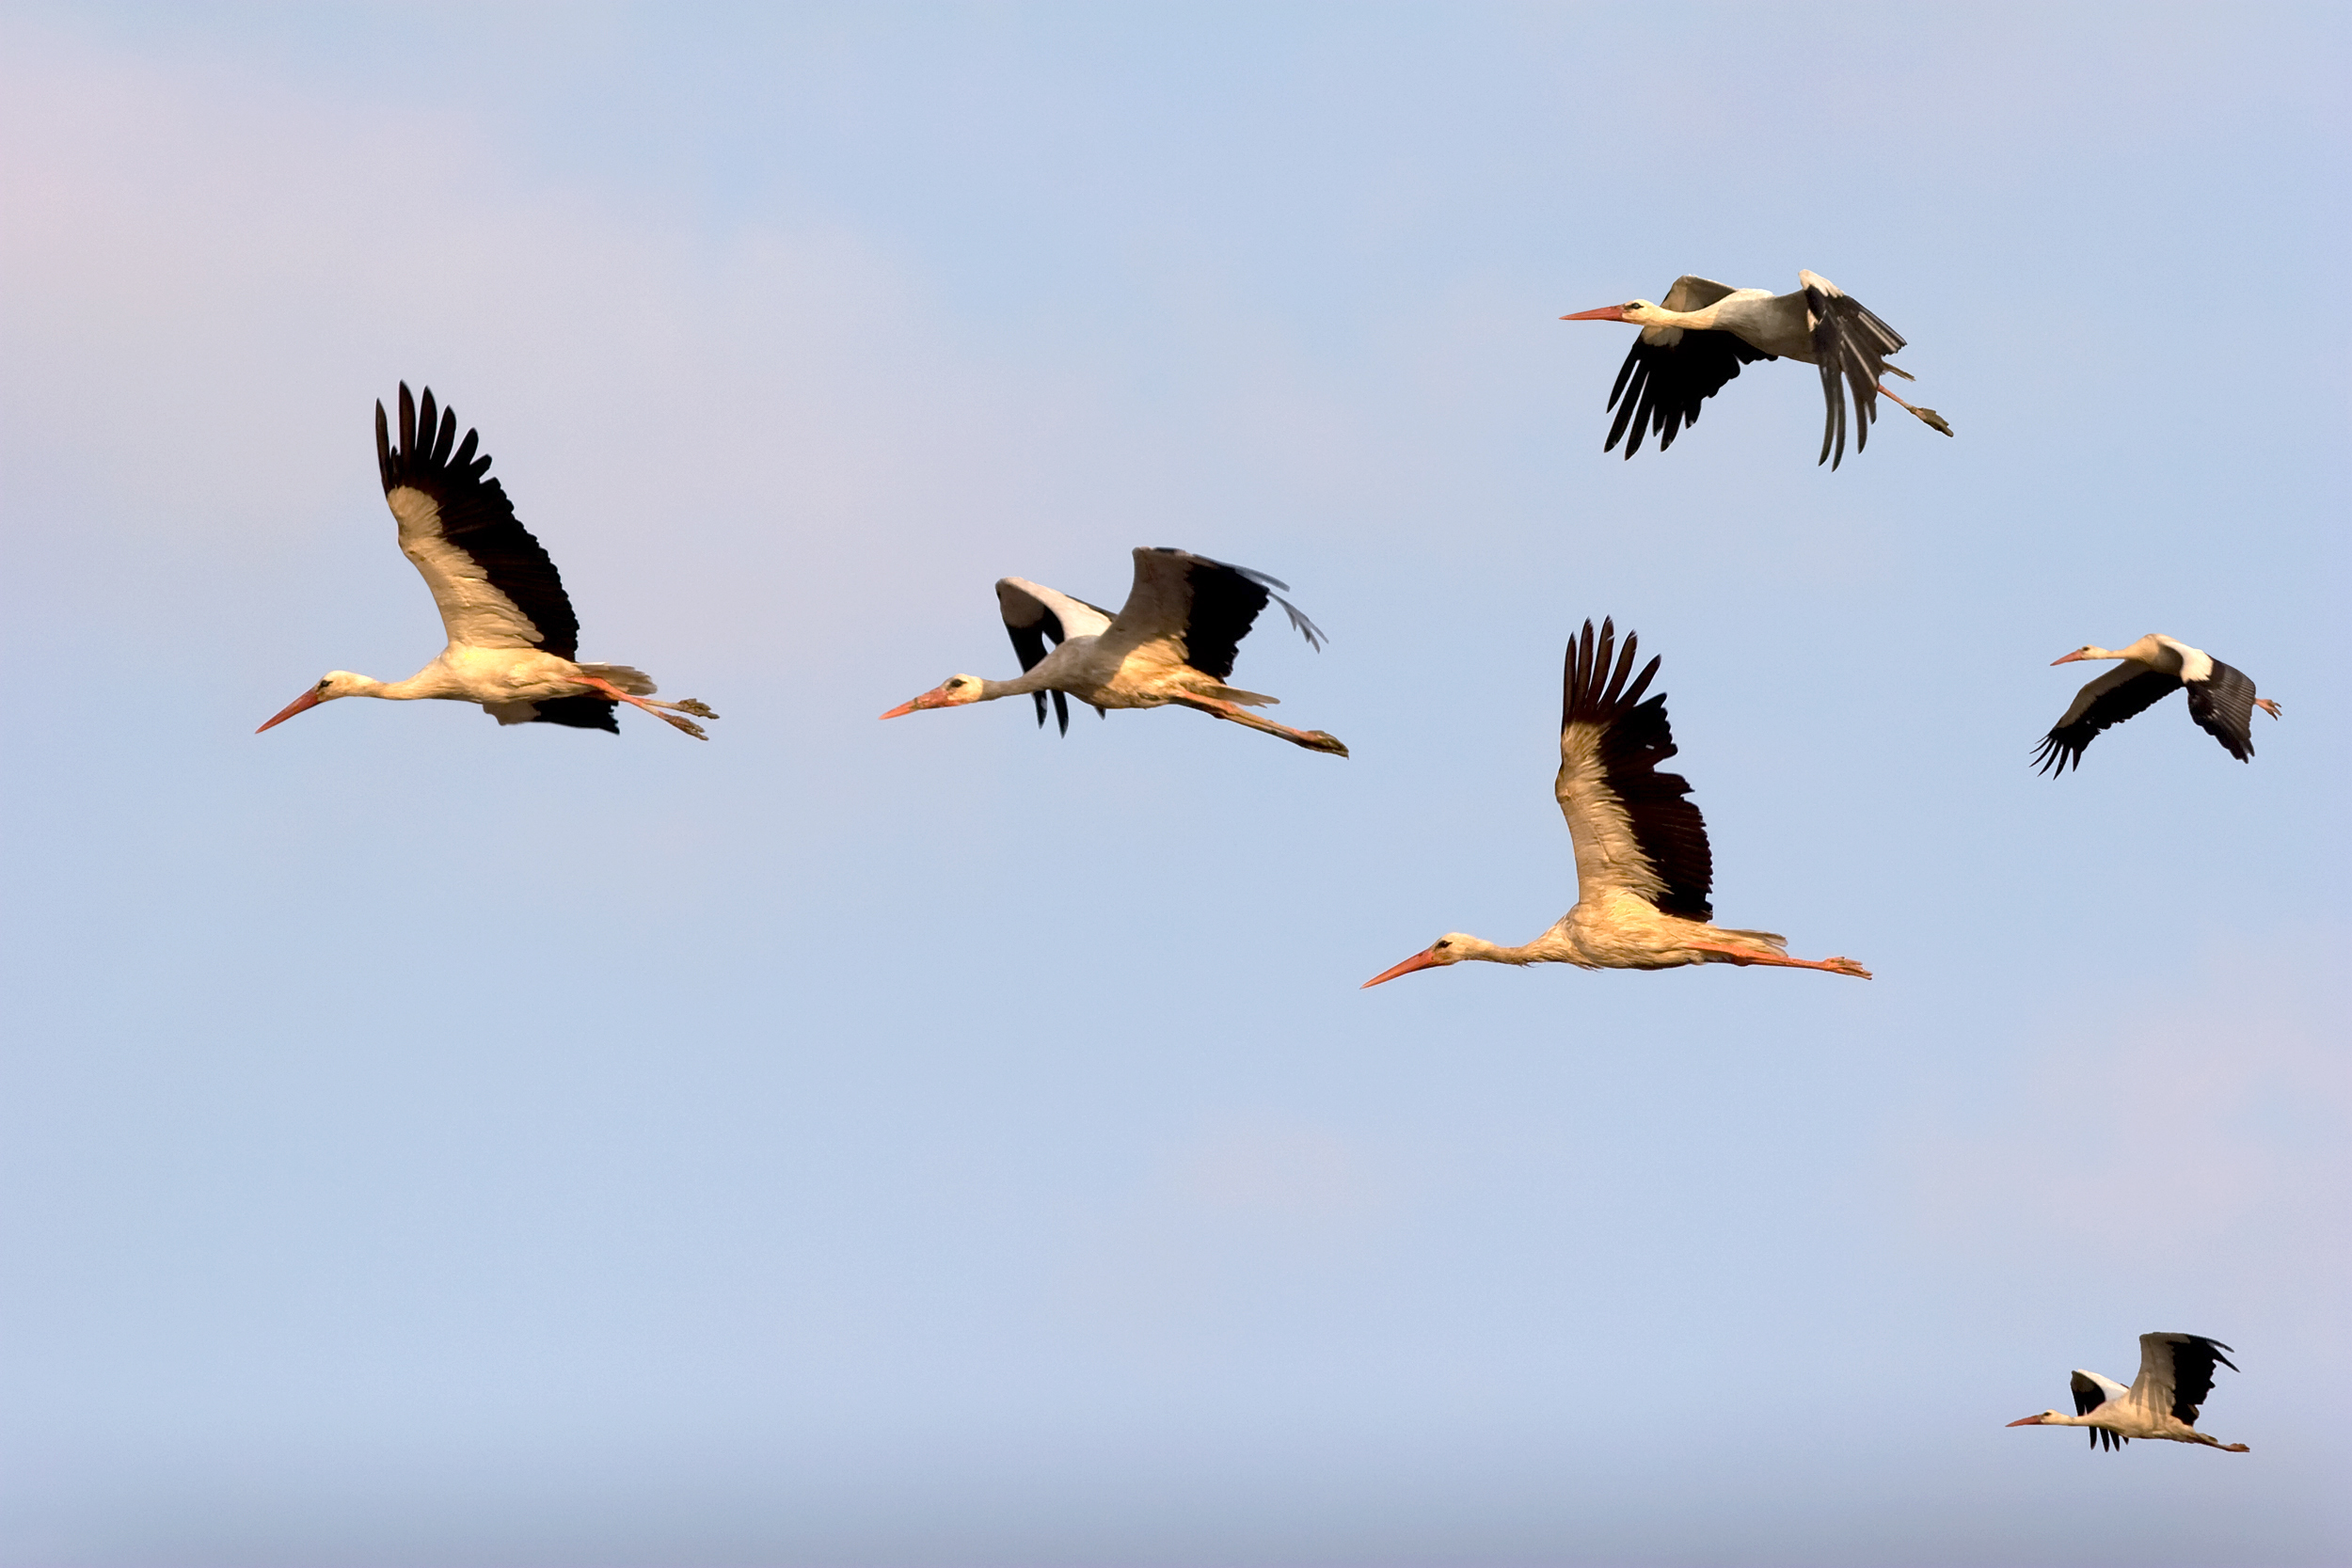 A new study has found that the storks at the head of the flock are most often the stronger, more efficient flyers.